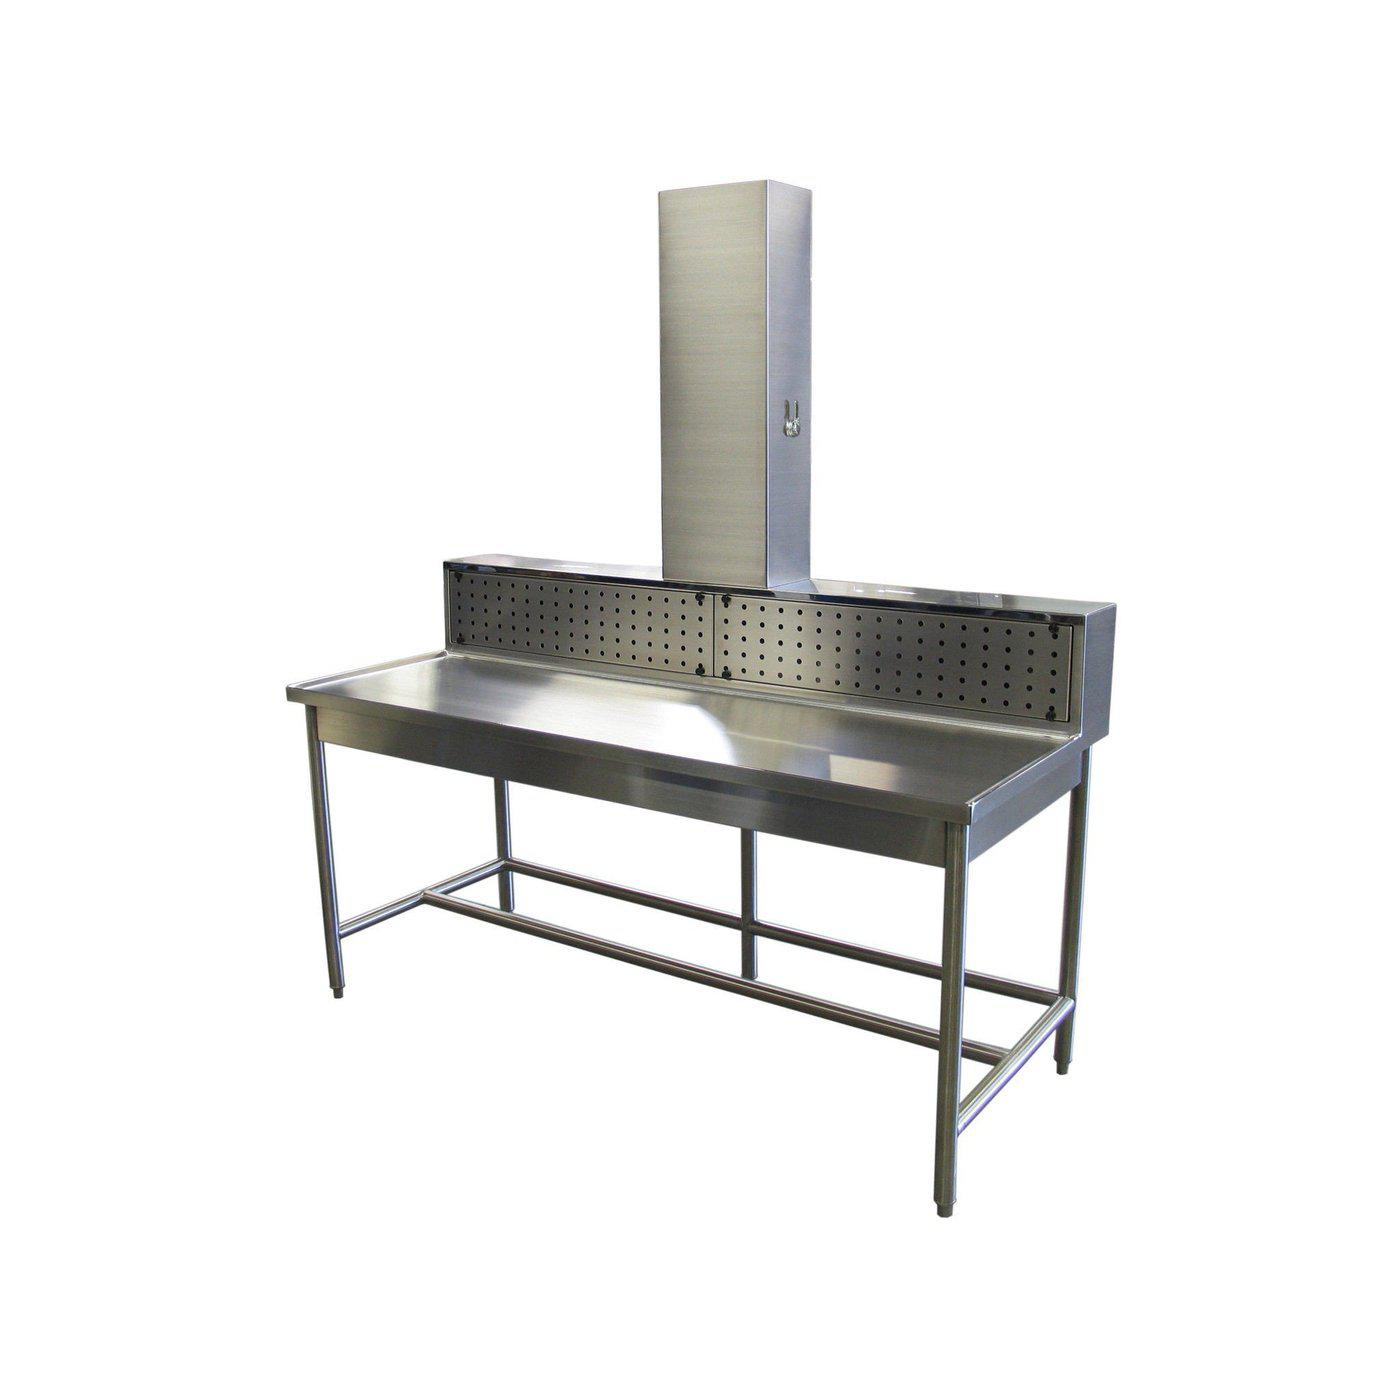 Backdraft Dissection Station-Necropsy Dissection Tables-Mortech Manufacturing Company Inc. Quality Stainless Steel Autopsy, Morgue, Funeral Home, Necropsy, Veterinary / Anatomy, Dissection Equipment and Accessories